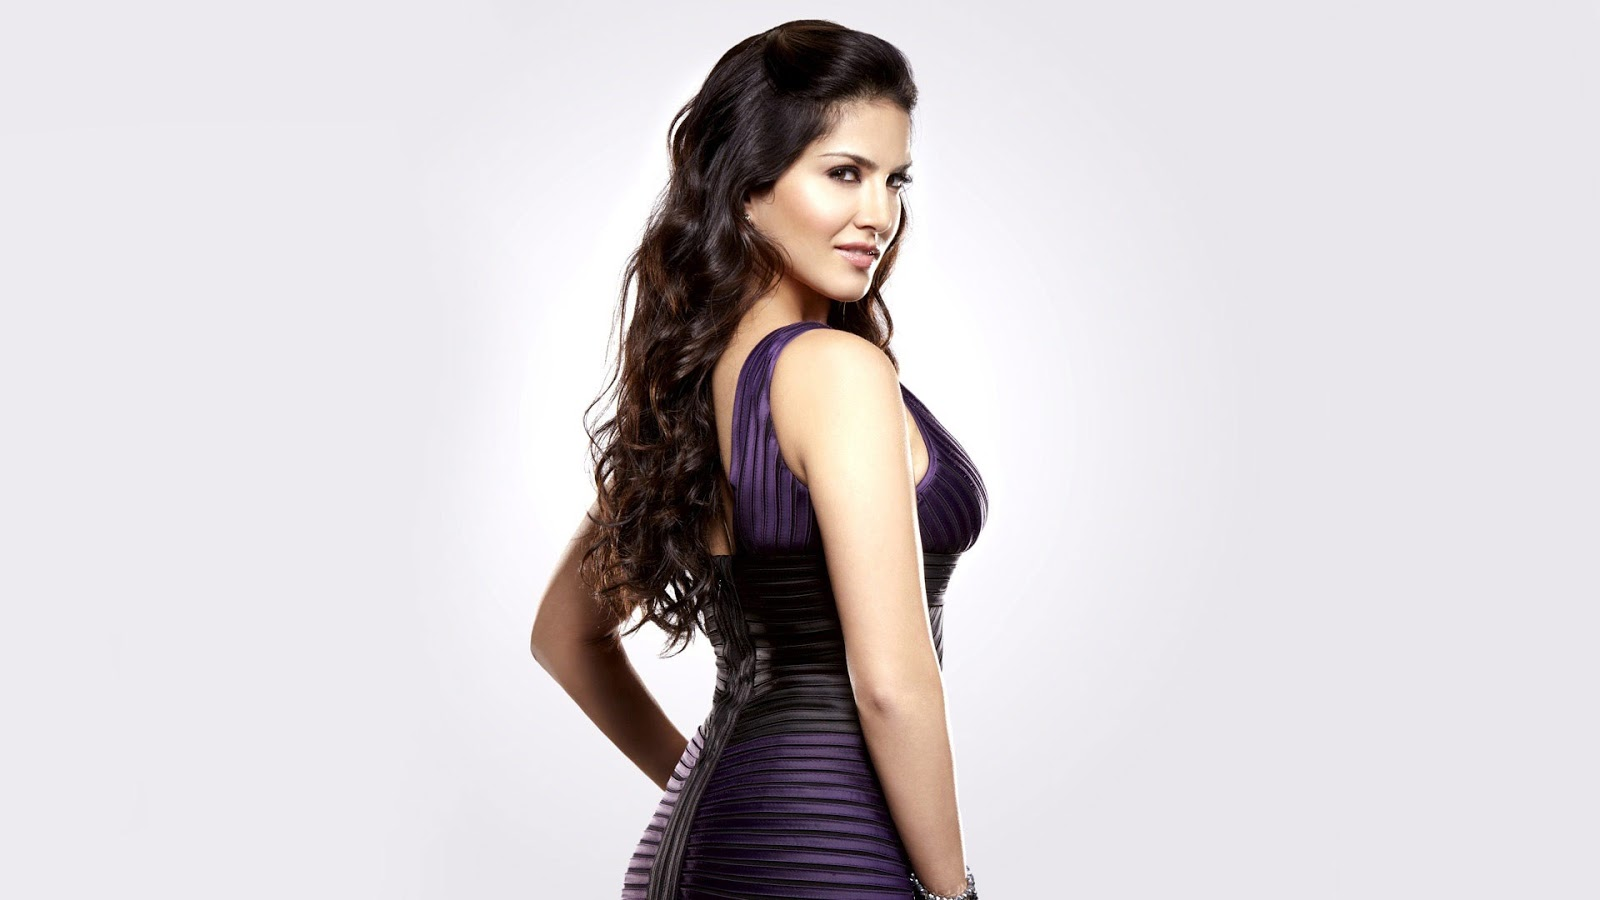 Bollywod Actress Sunny Leone Hot Hd Wallpaper Download -8378